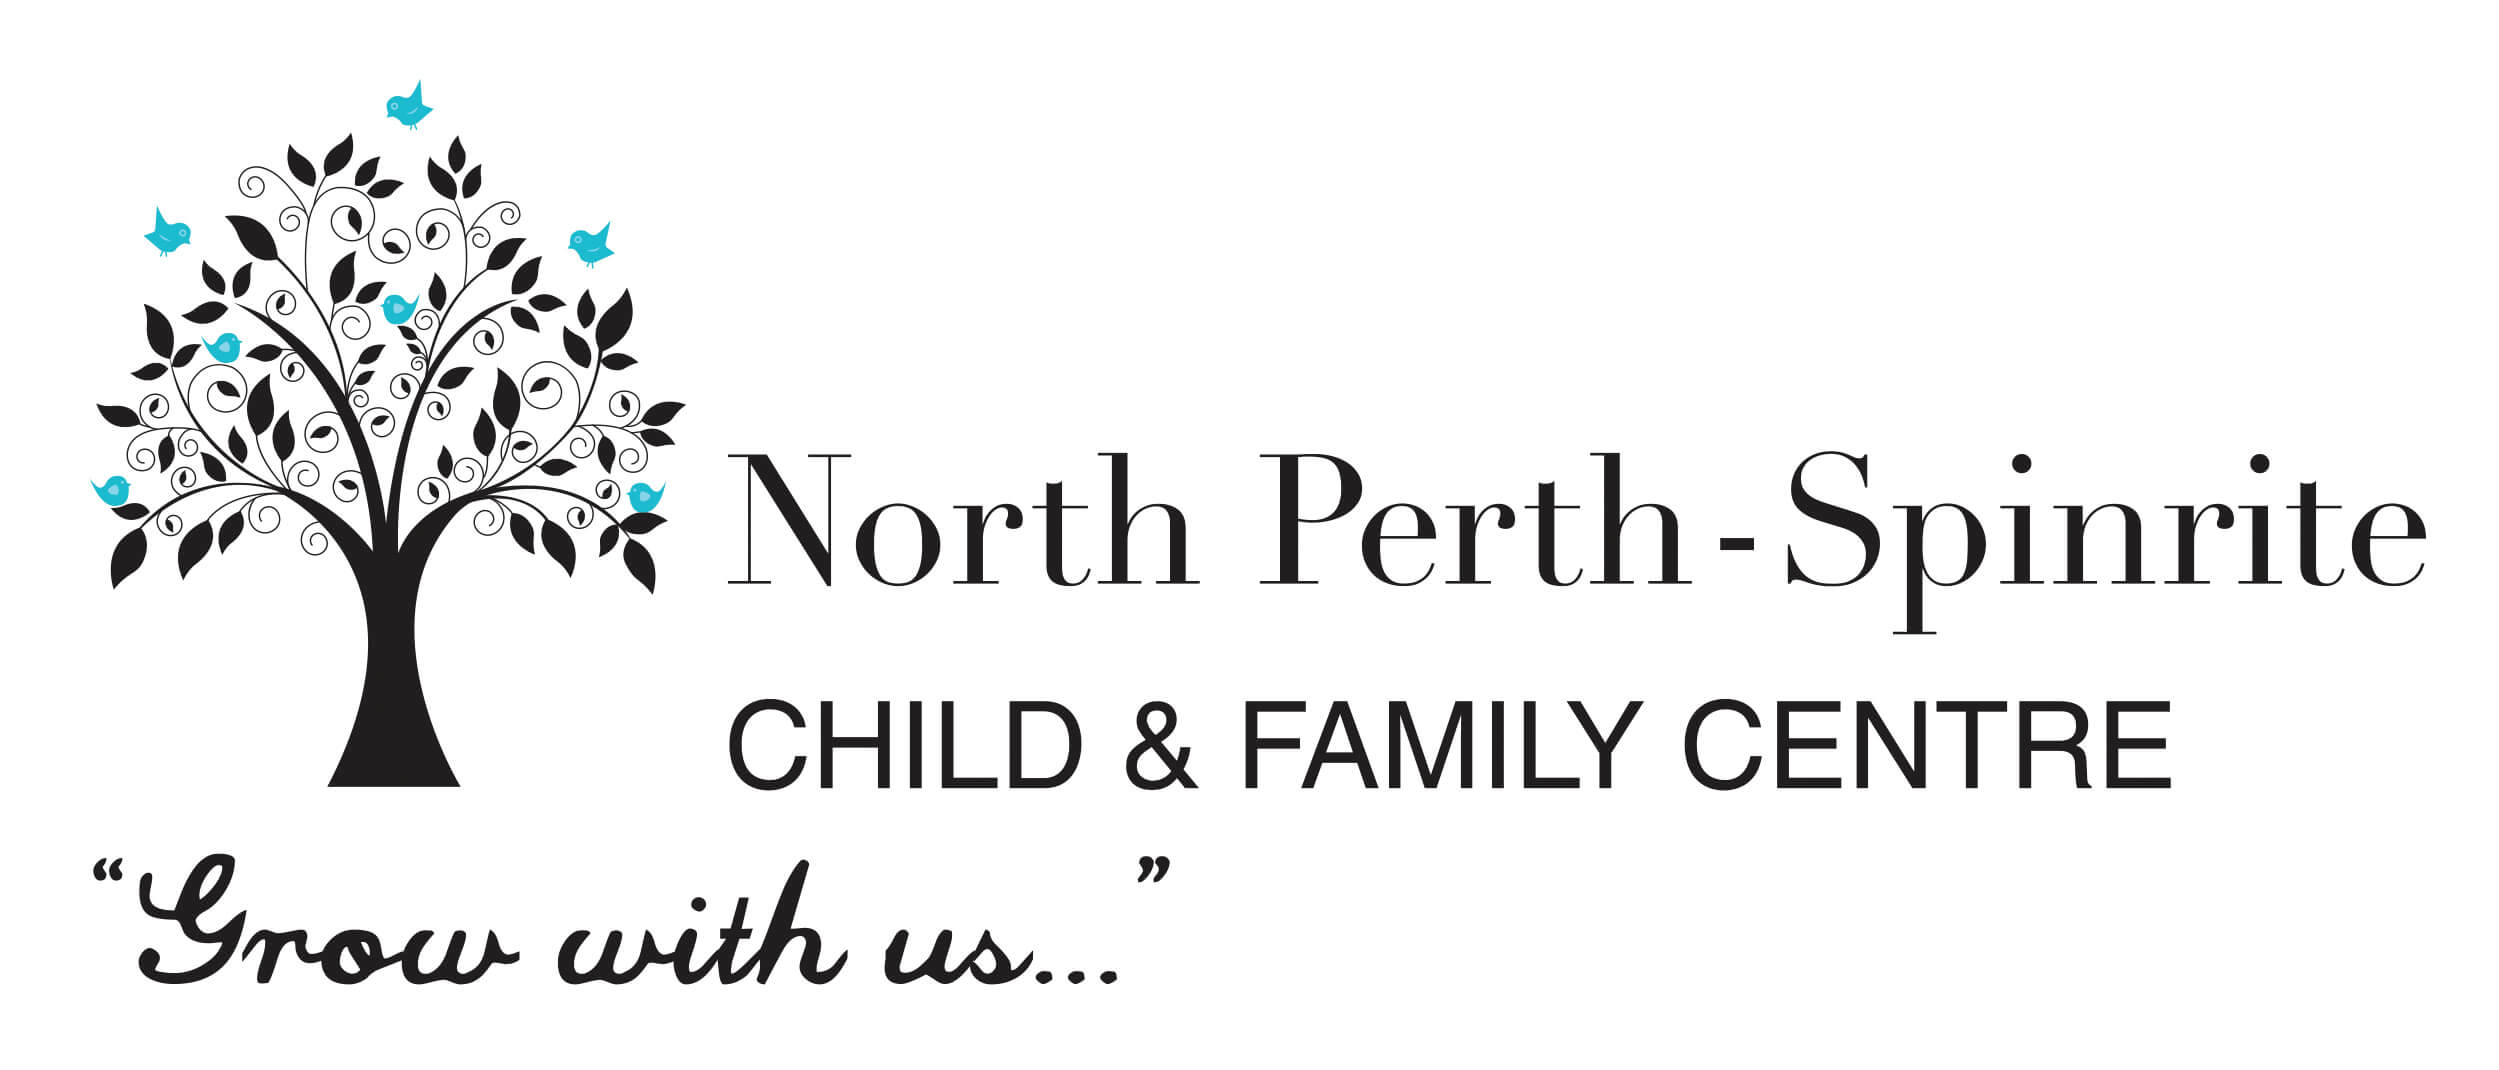 North Perth Child and Family Centre logo